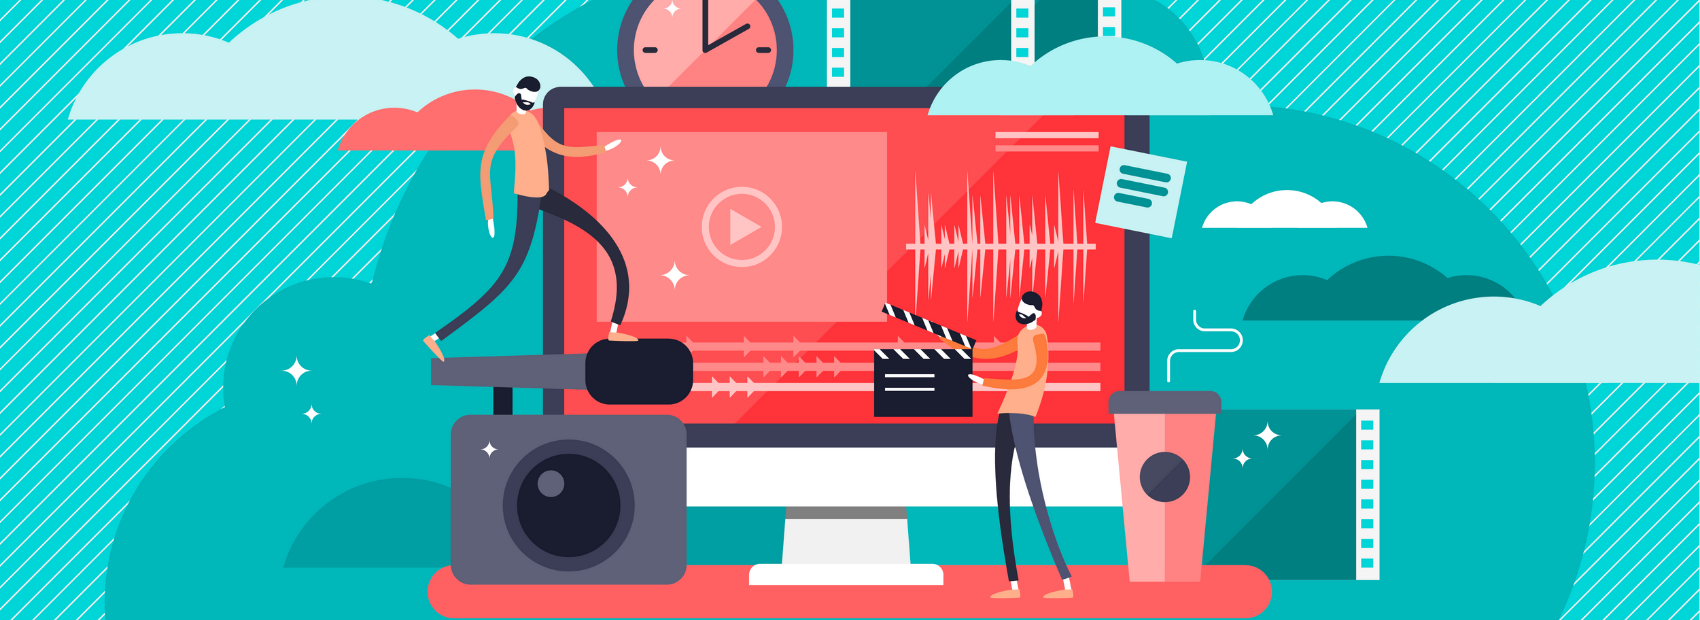 Video Marketing: 10 consigli vincenti nelle PMI